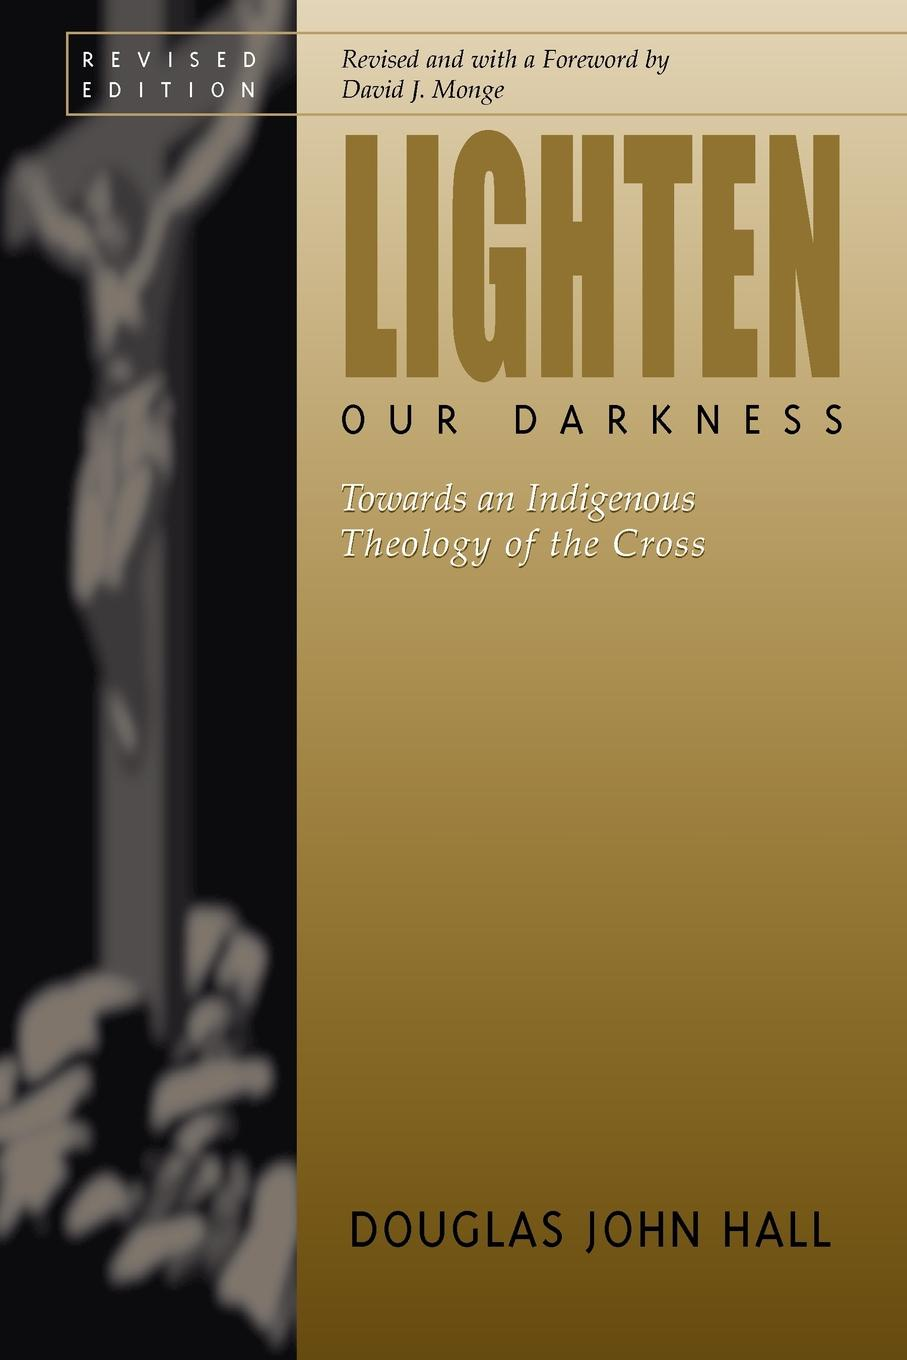 DAVID MONGE, DOUGLAS JOHN HALL LIGHTEN OUR DARKNESS victor a shepherd the nature and function of faith in the theology of john calvin